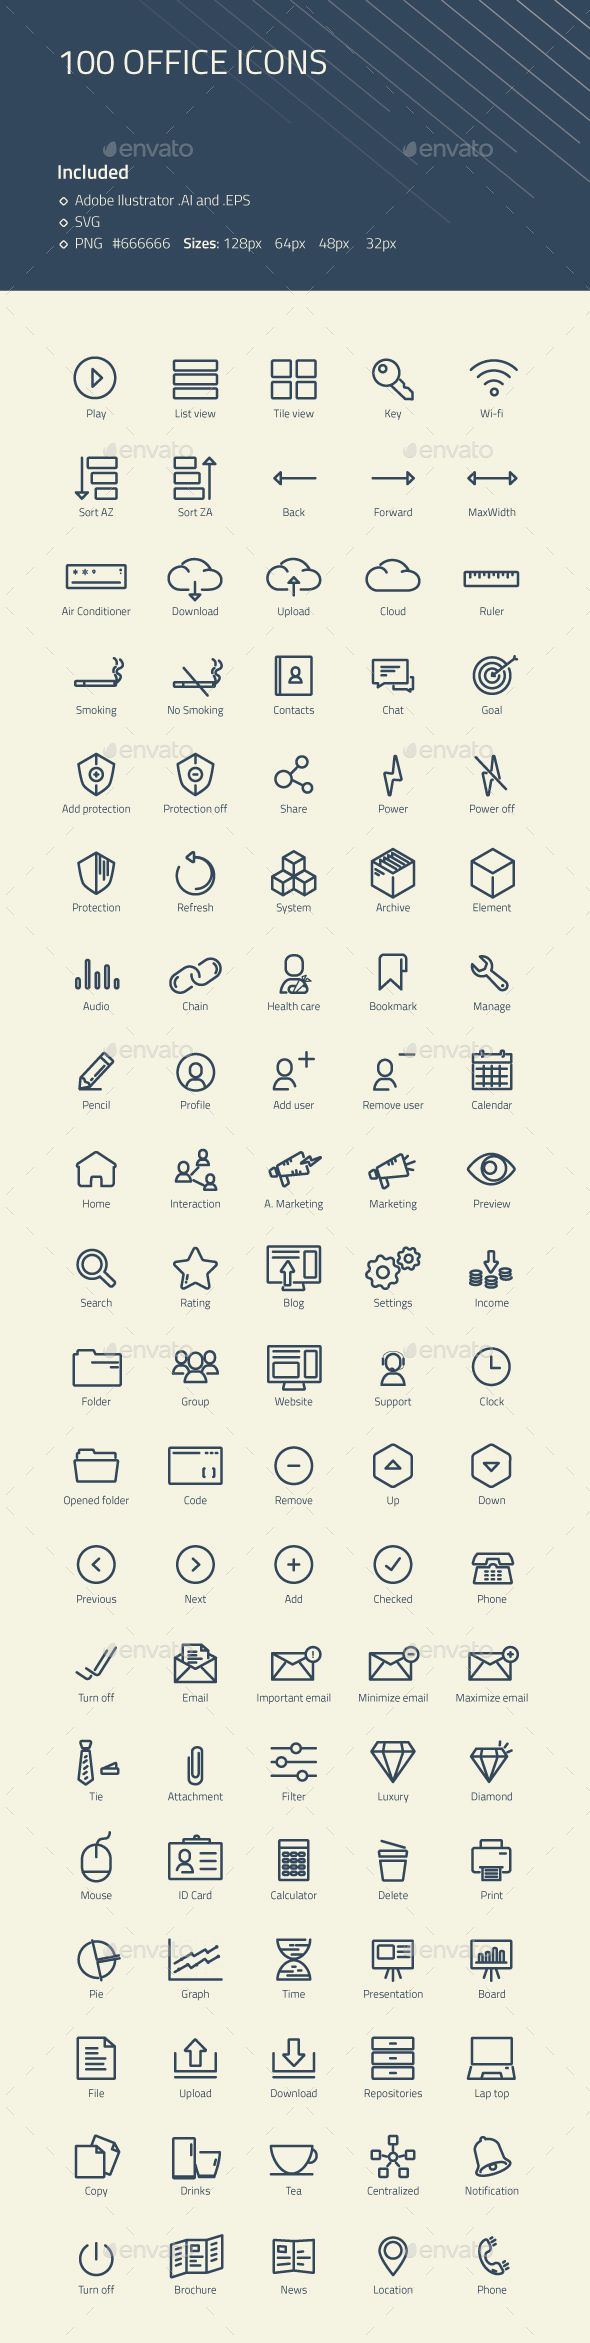 Modern Office #Icons - #Business Icons Download here: https://graphicriver.net/item/modern-office-icons/20304279?ref=alena994